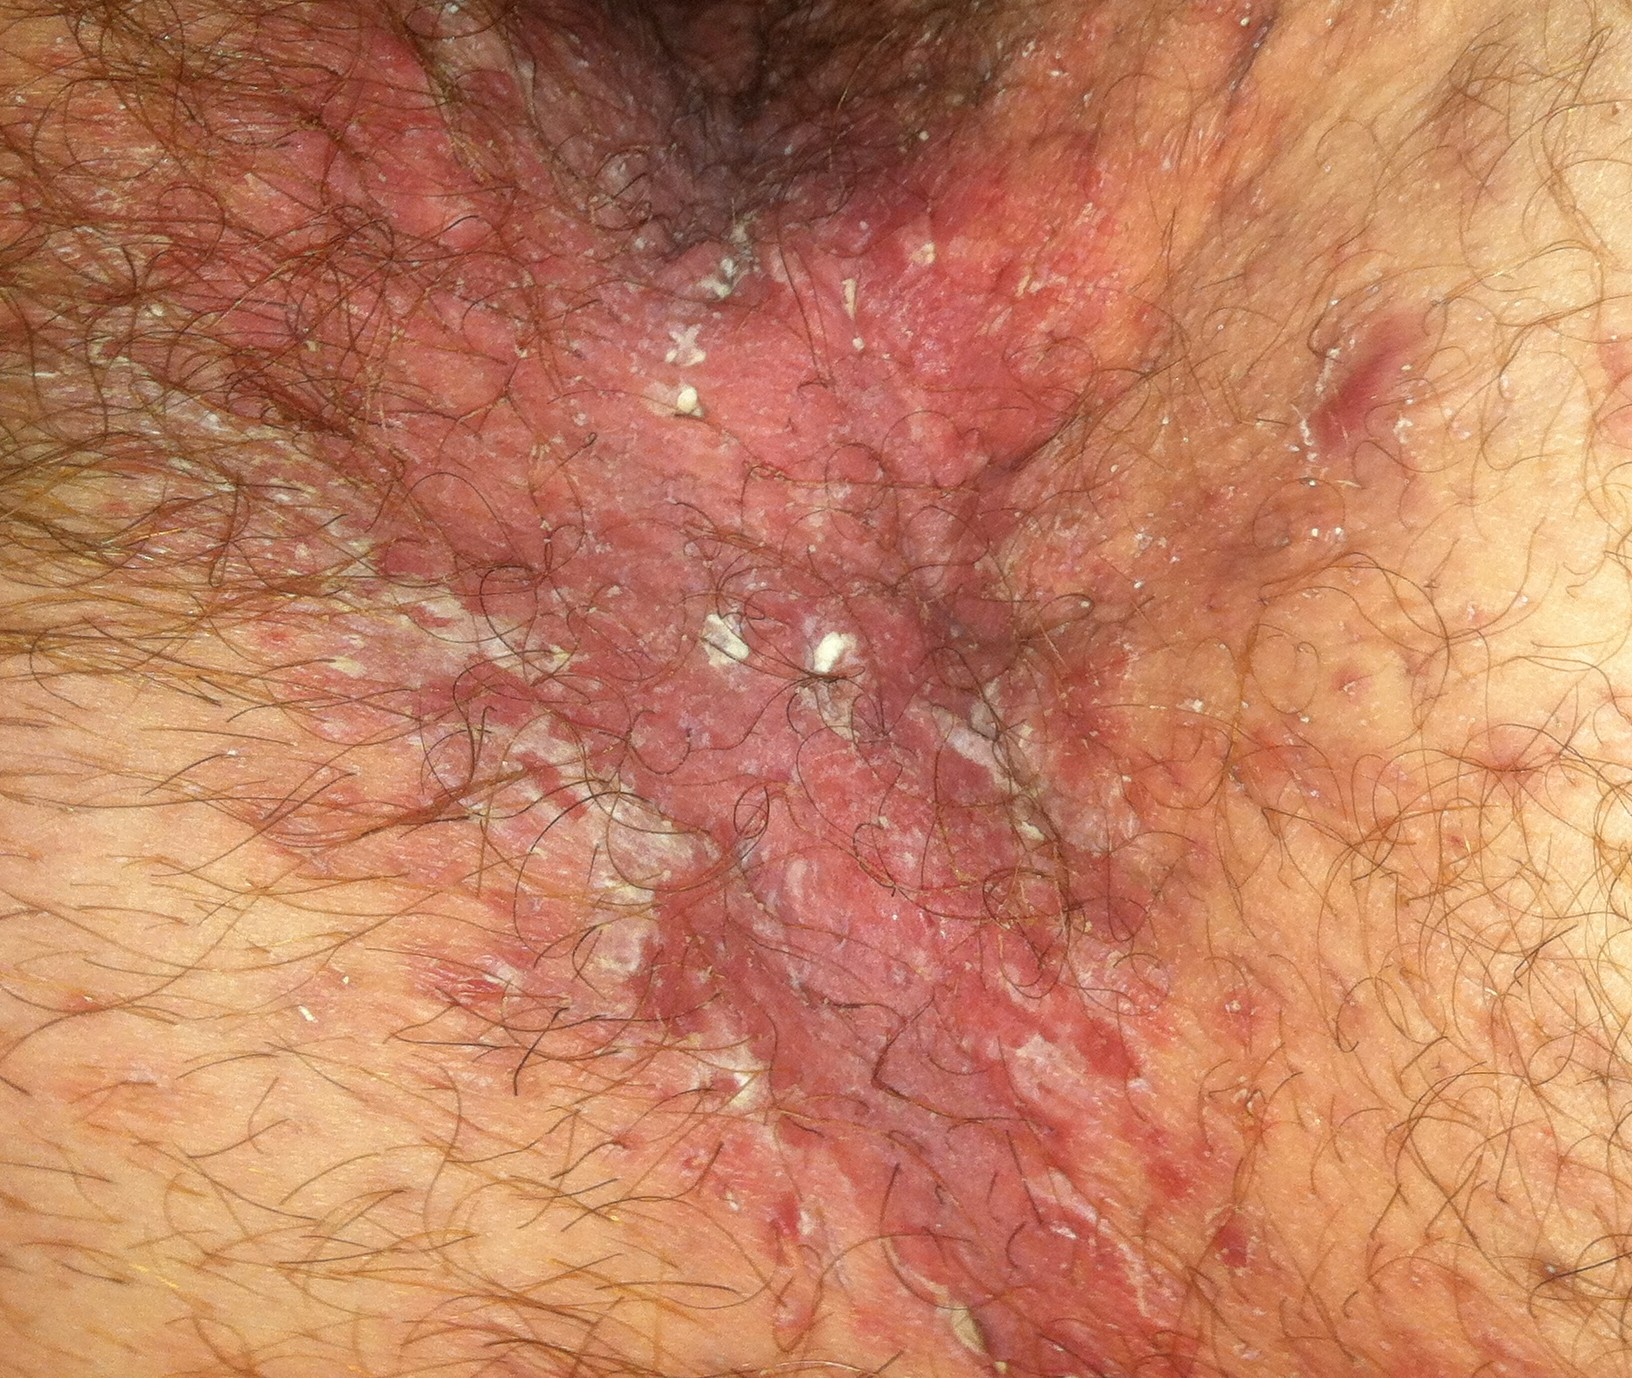 Rash On My Inner Thigh